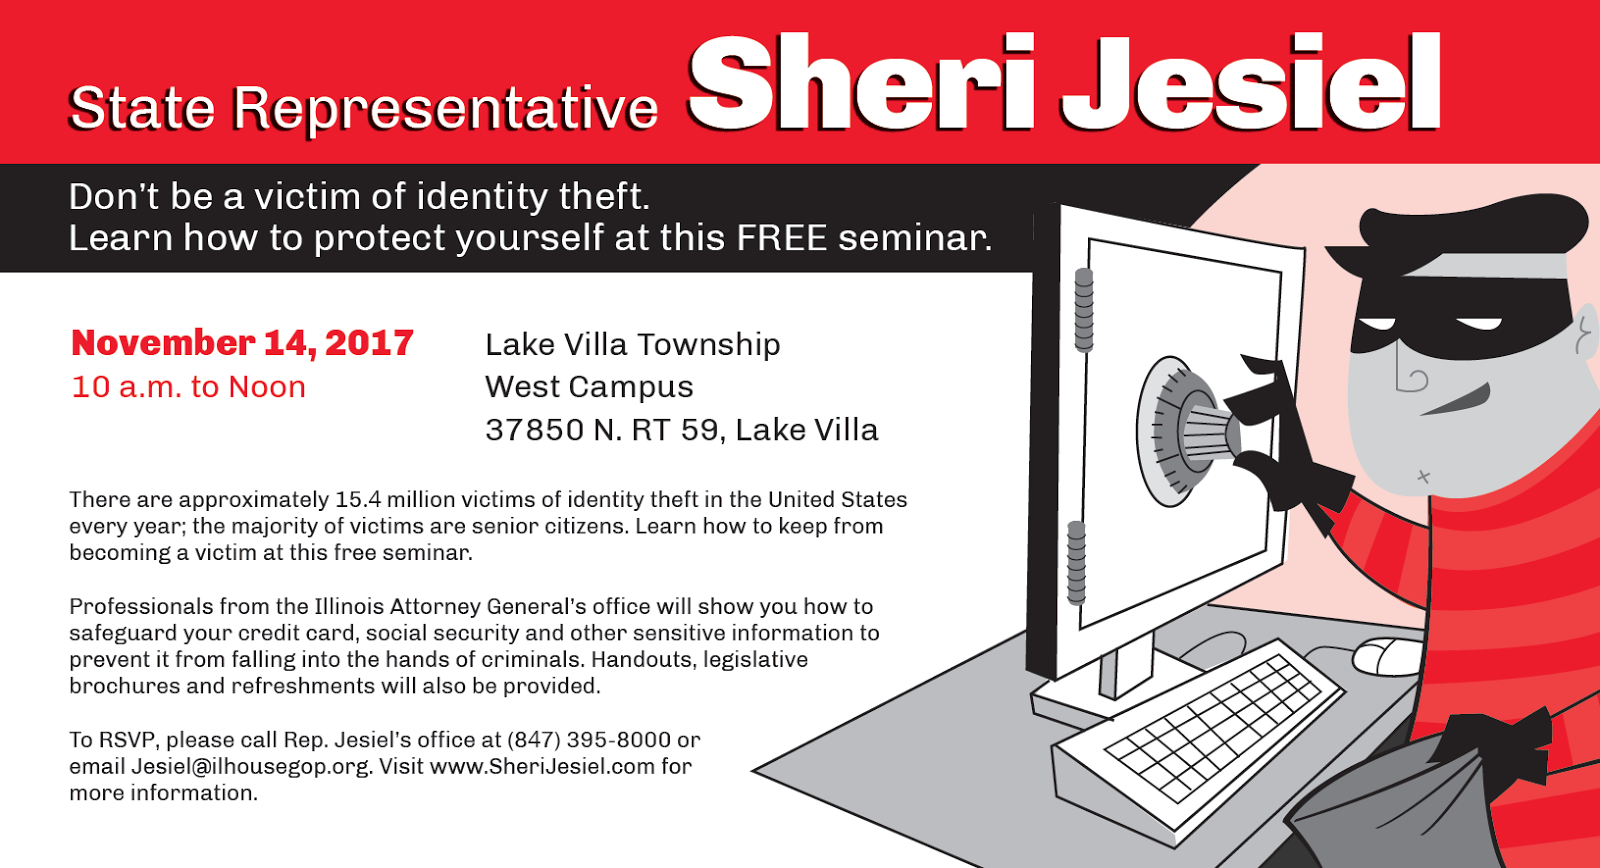 Ides illinois file my certification - State Representative Sheri Jesiel R Winthrop Harbor Is Hosting A Free Seminar For Residents To Learn How To Protect Themselves From Identity Theft On